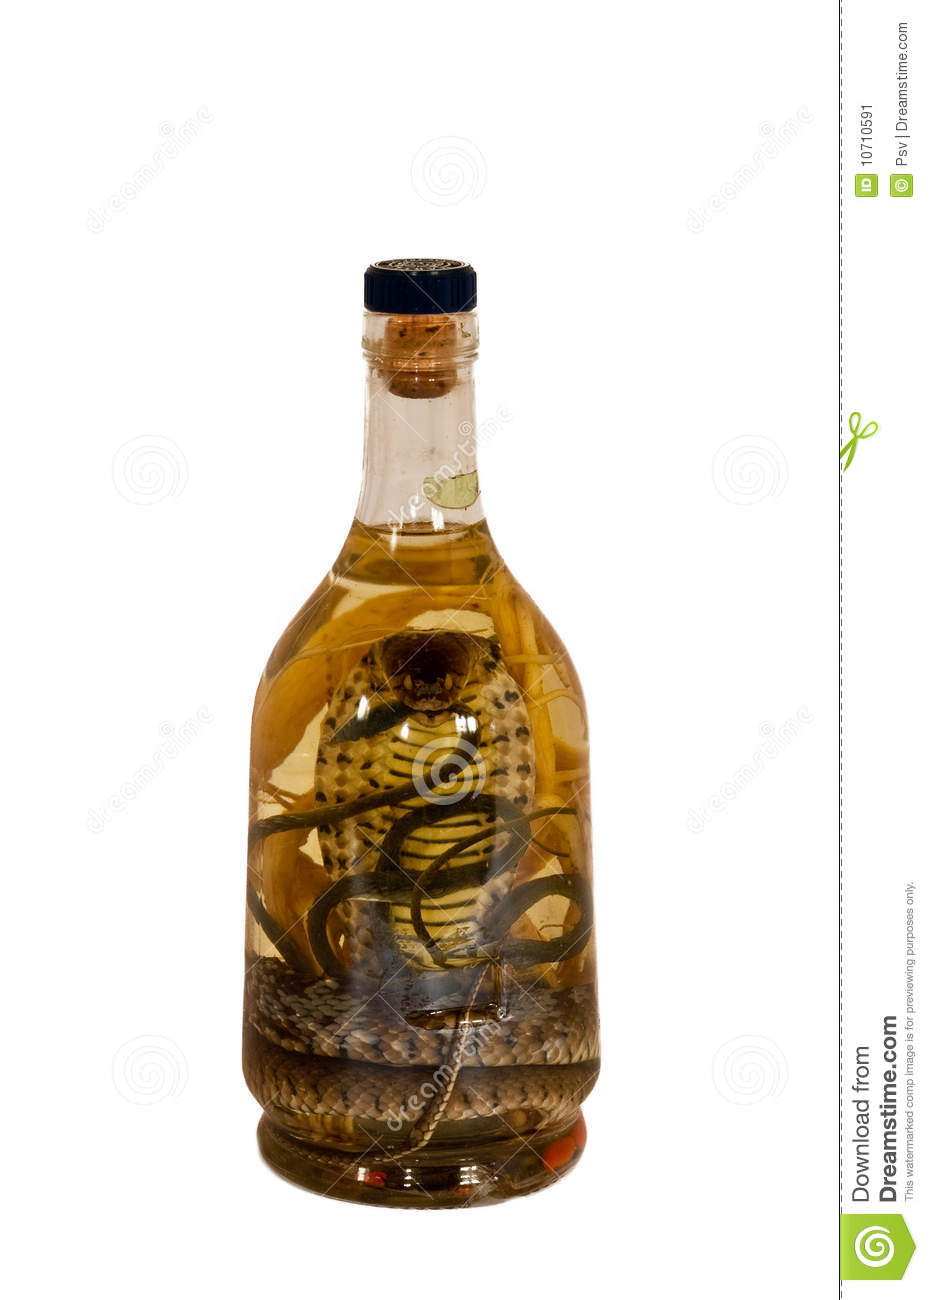 vodka with snake in a bottle stock image image 10710591. Black Bedroom Furniture Sets. Home Design Ideas